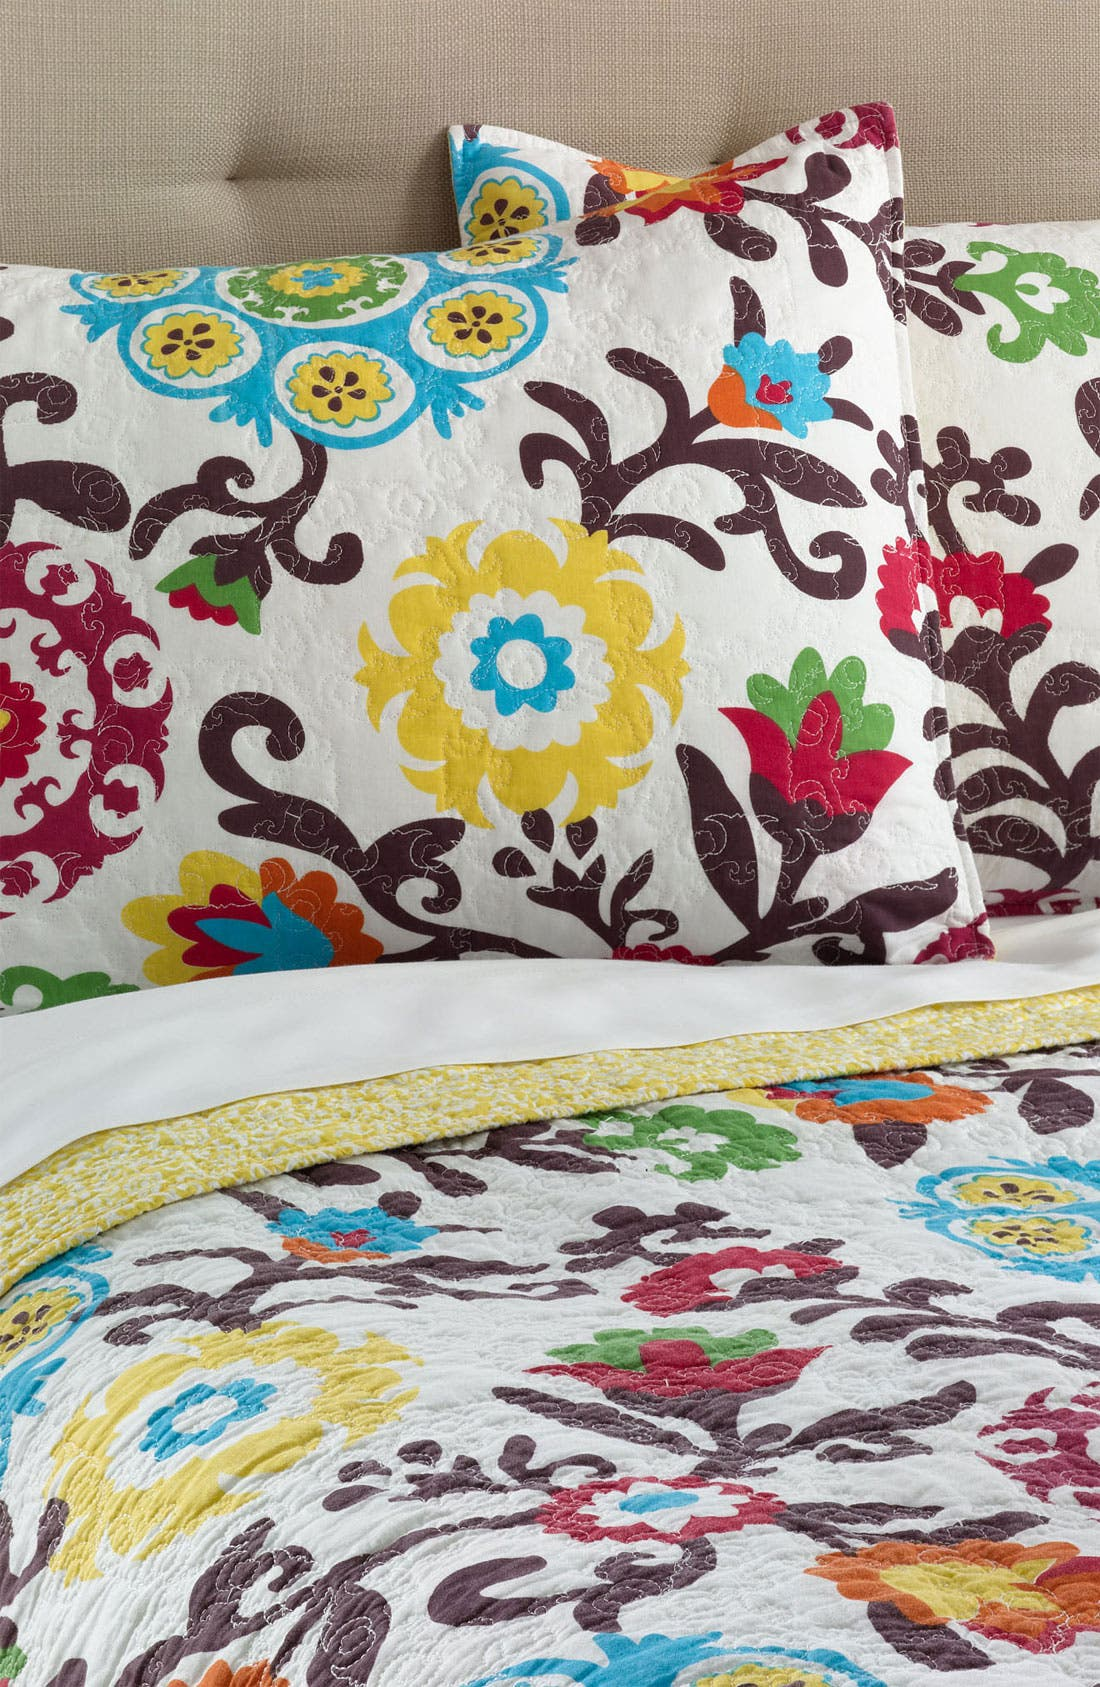 Main Image - Levtex 'Corazon' Quilted Pillow Sham